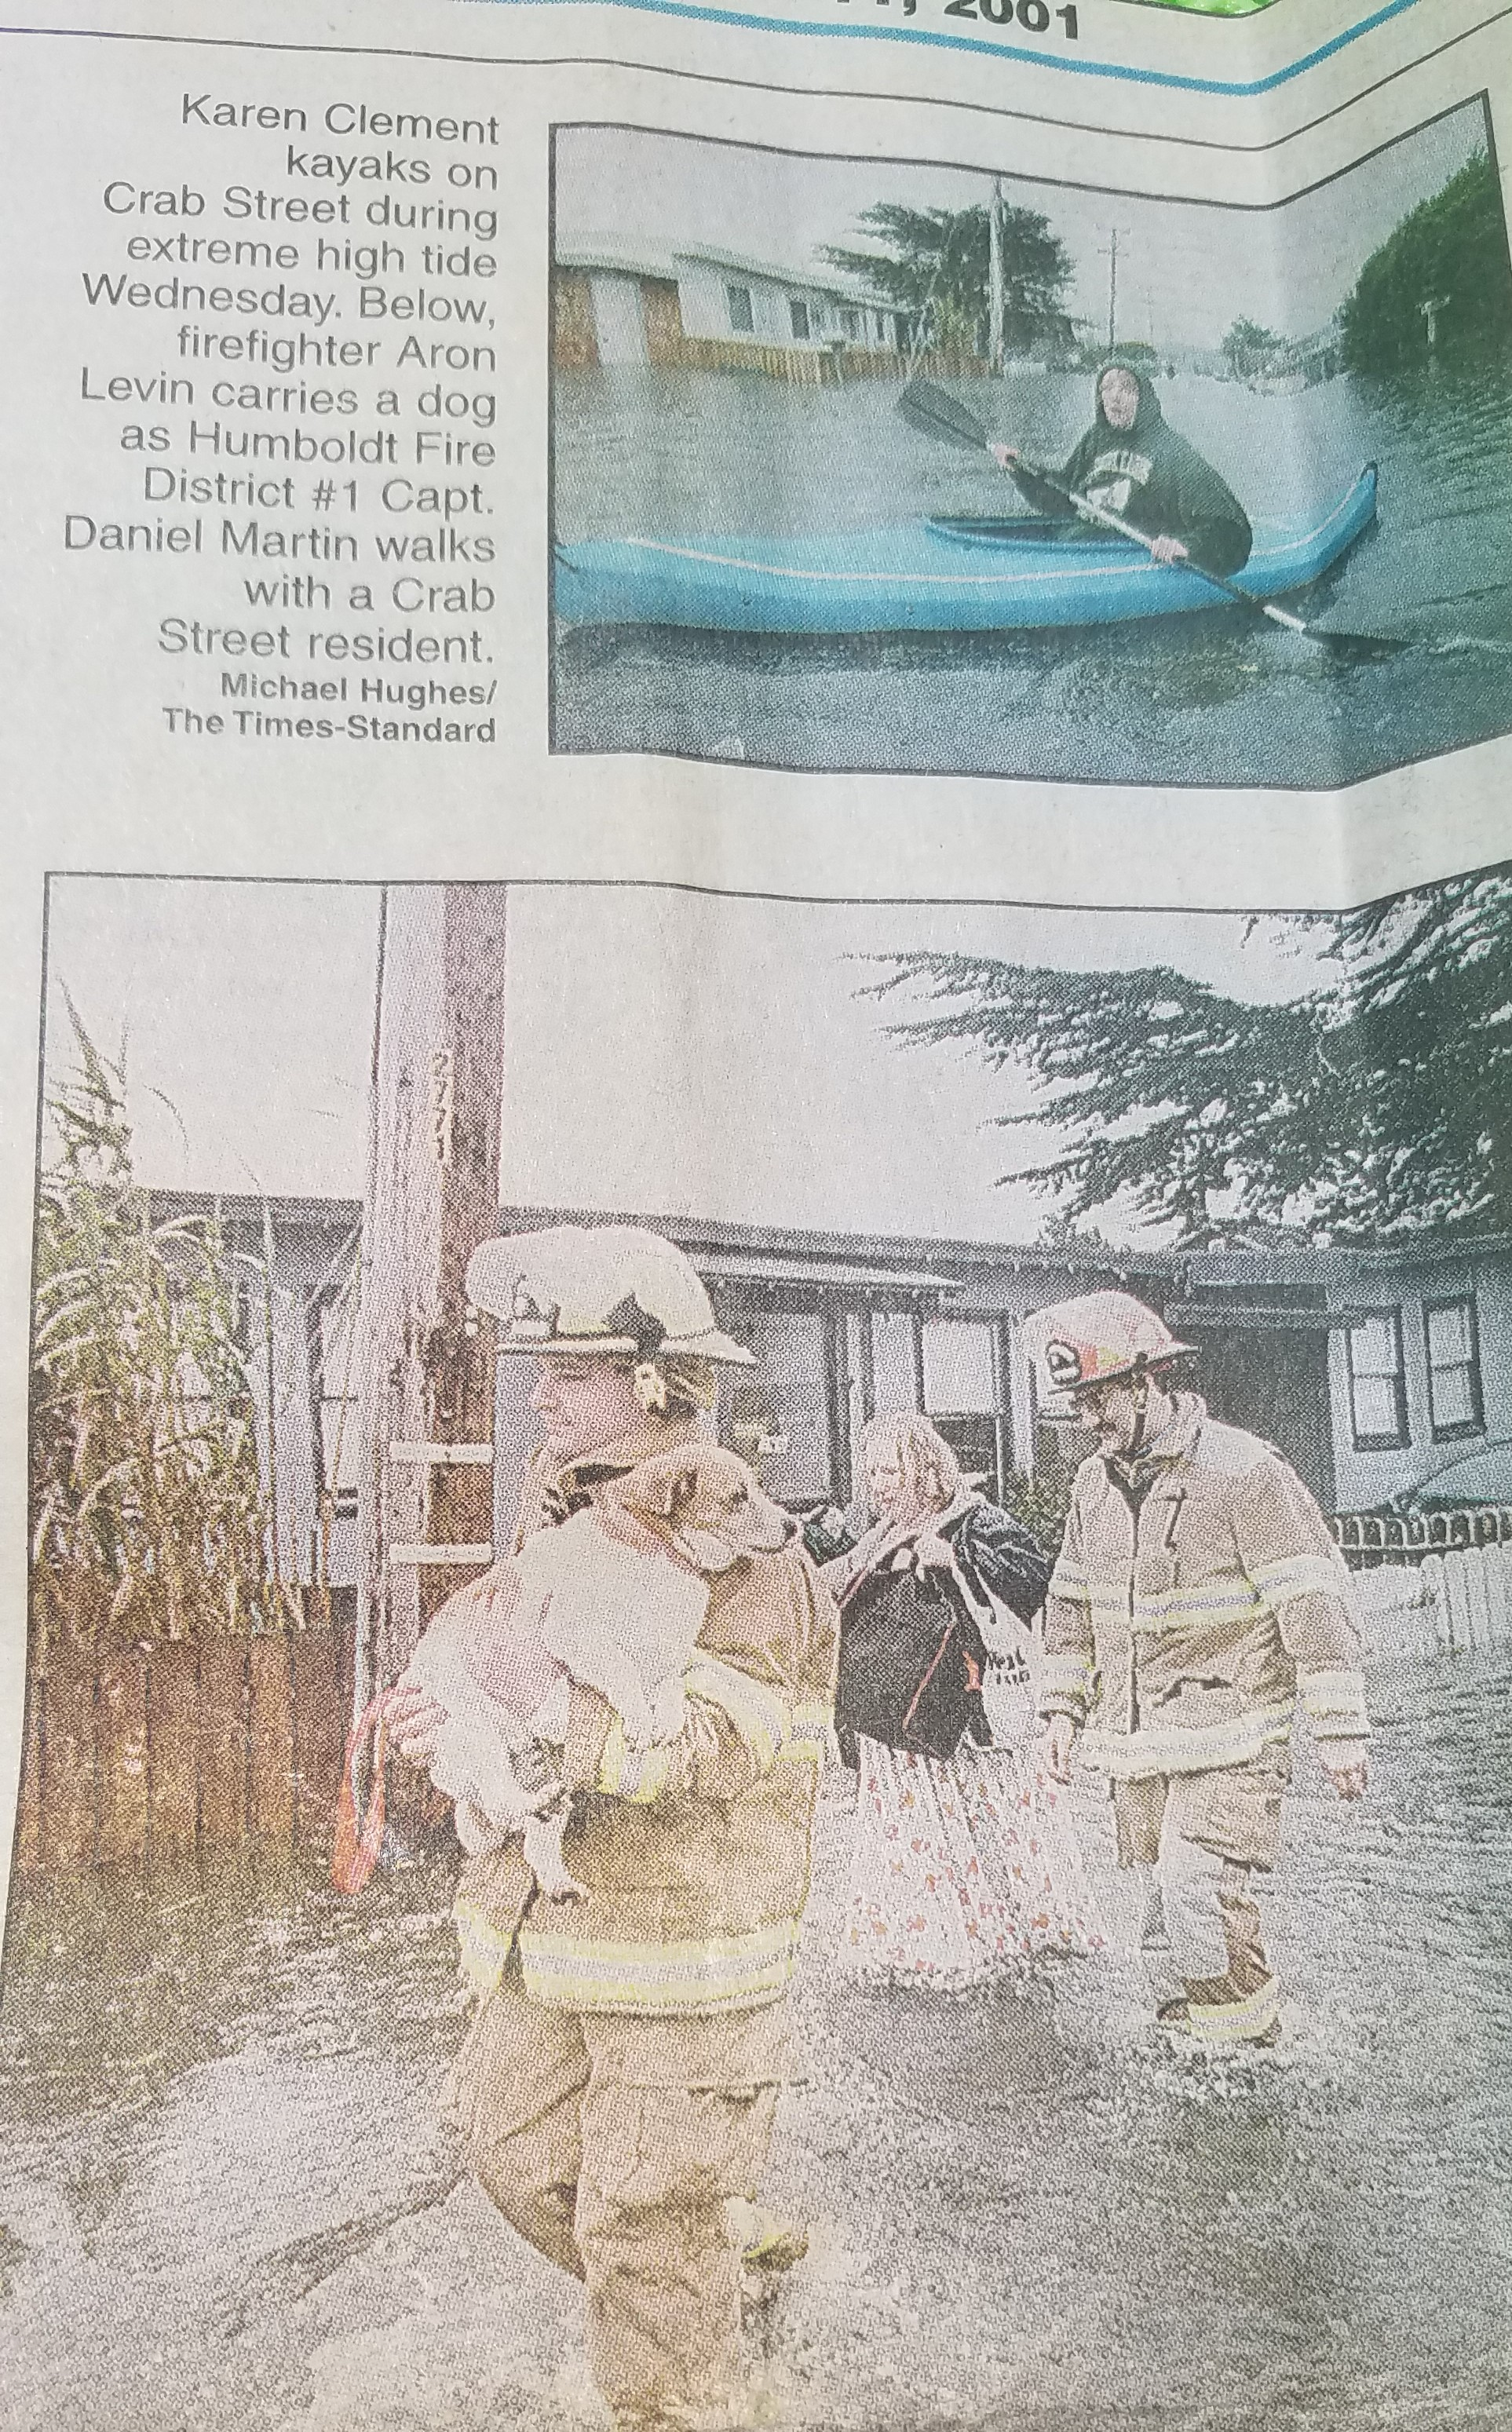 Old newspaper clipping showing flooding in King Salmon